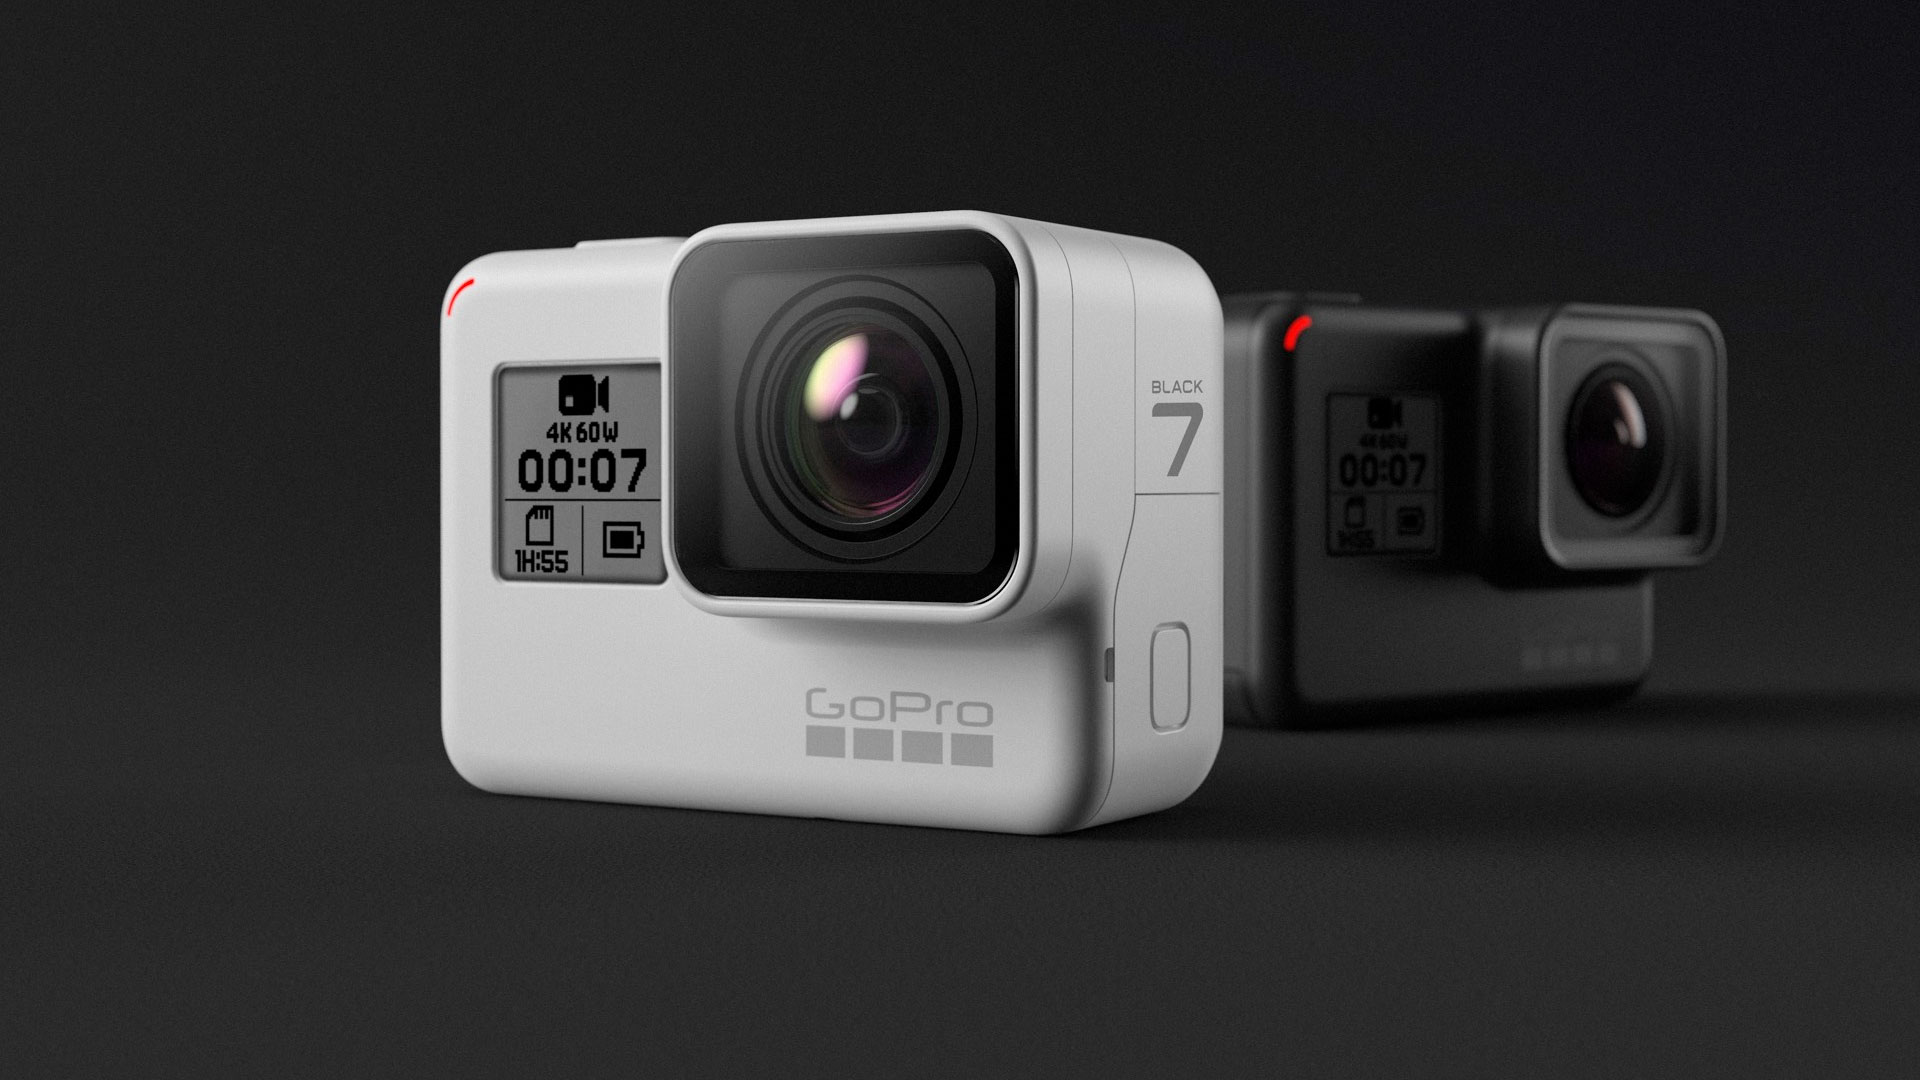 GoPro HERO7 Black delivers 4K60 footage, voice control, more: $293 (Reg. up to $400)